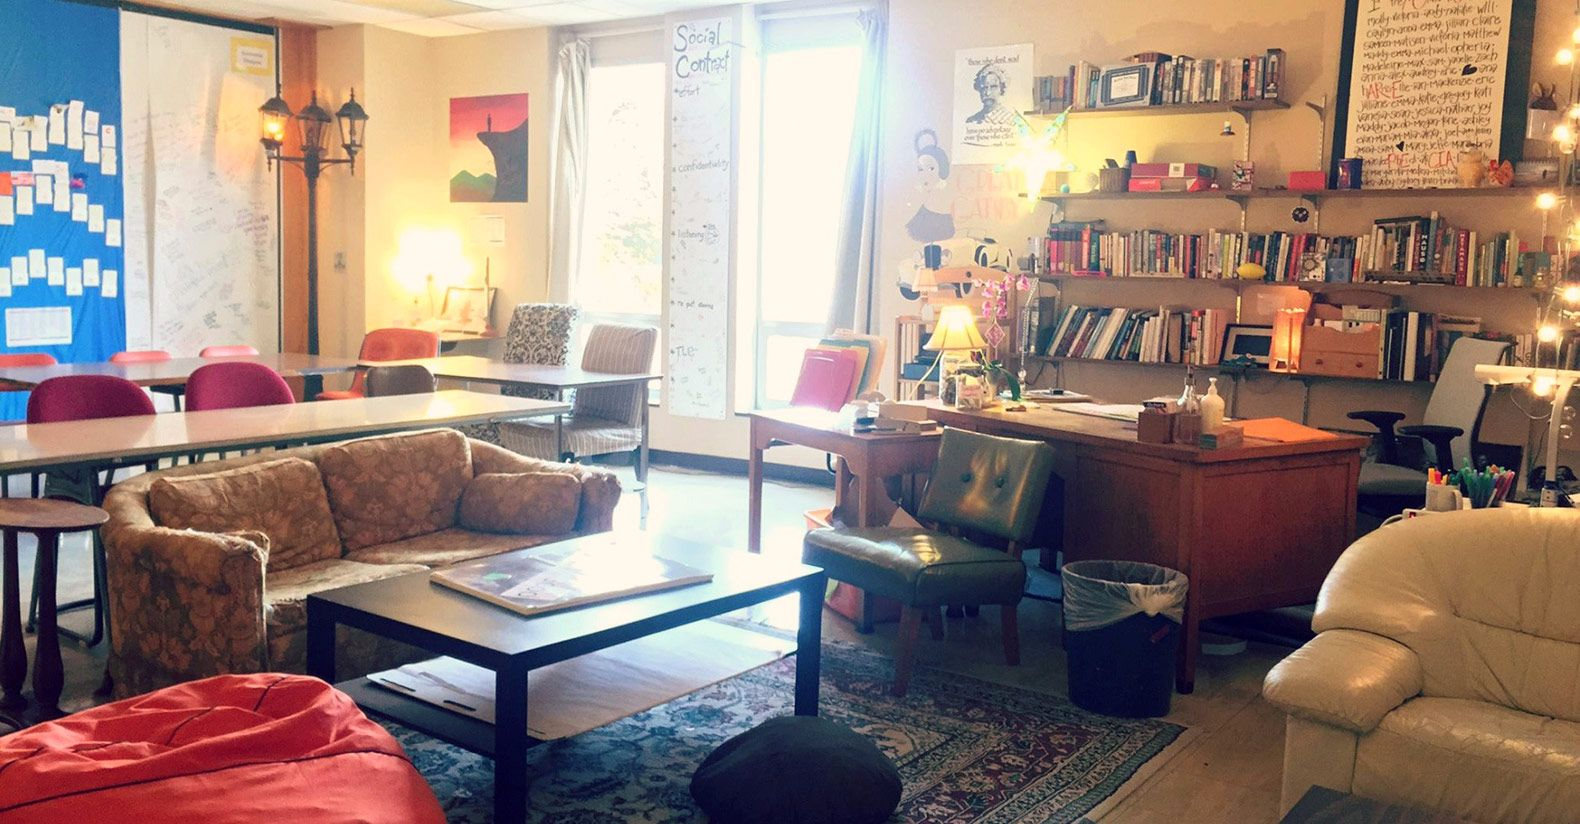 High school English teacher Rebecca Malmquist combines natural lighting with lamps to create a warm, inviting environment.